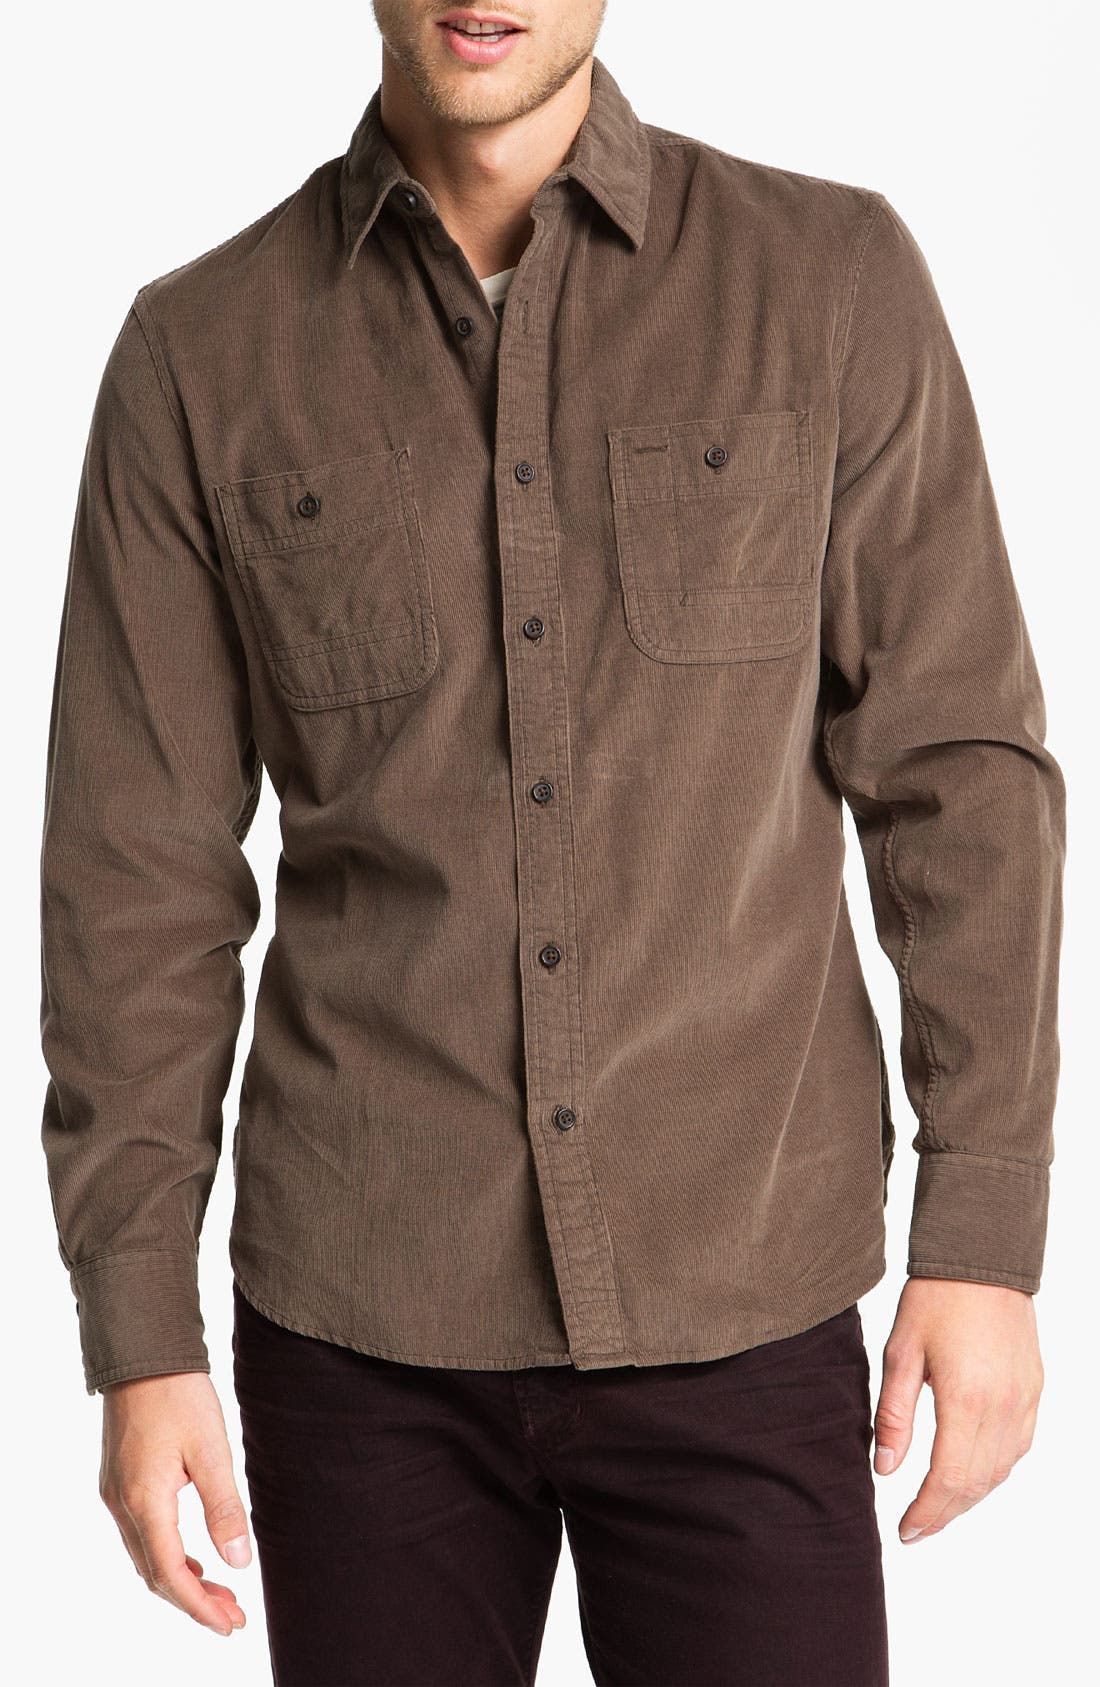 Main Image - Wallin & Bros. Corduroy Work Shirt